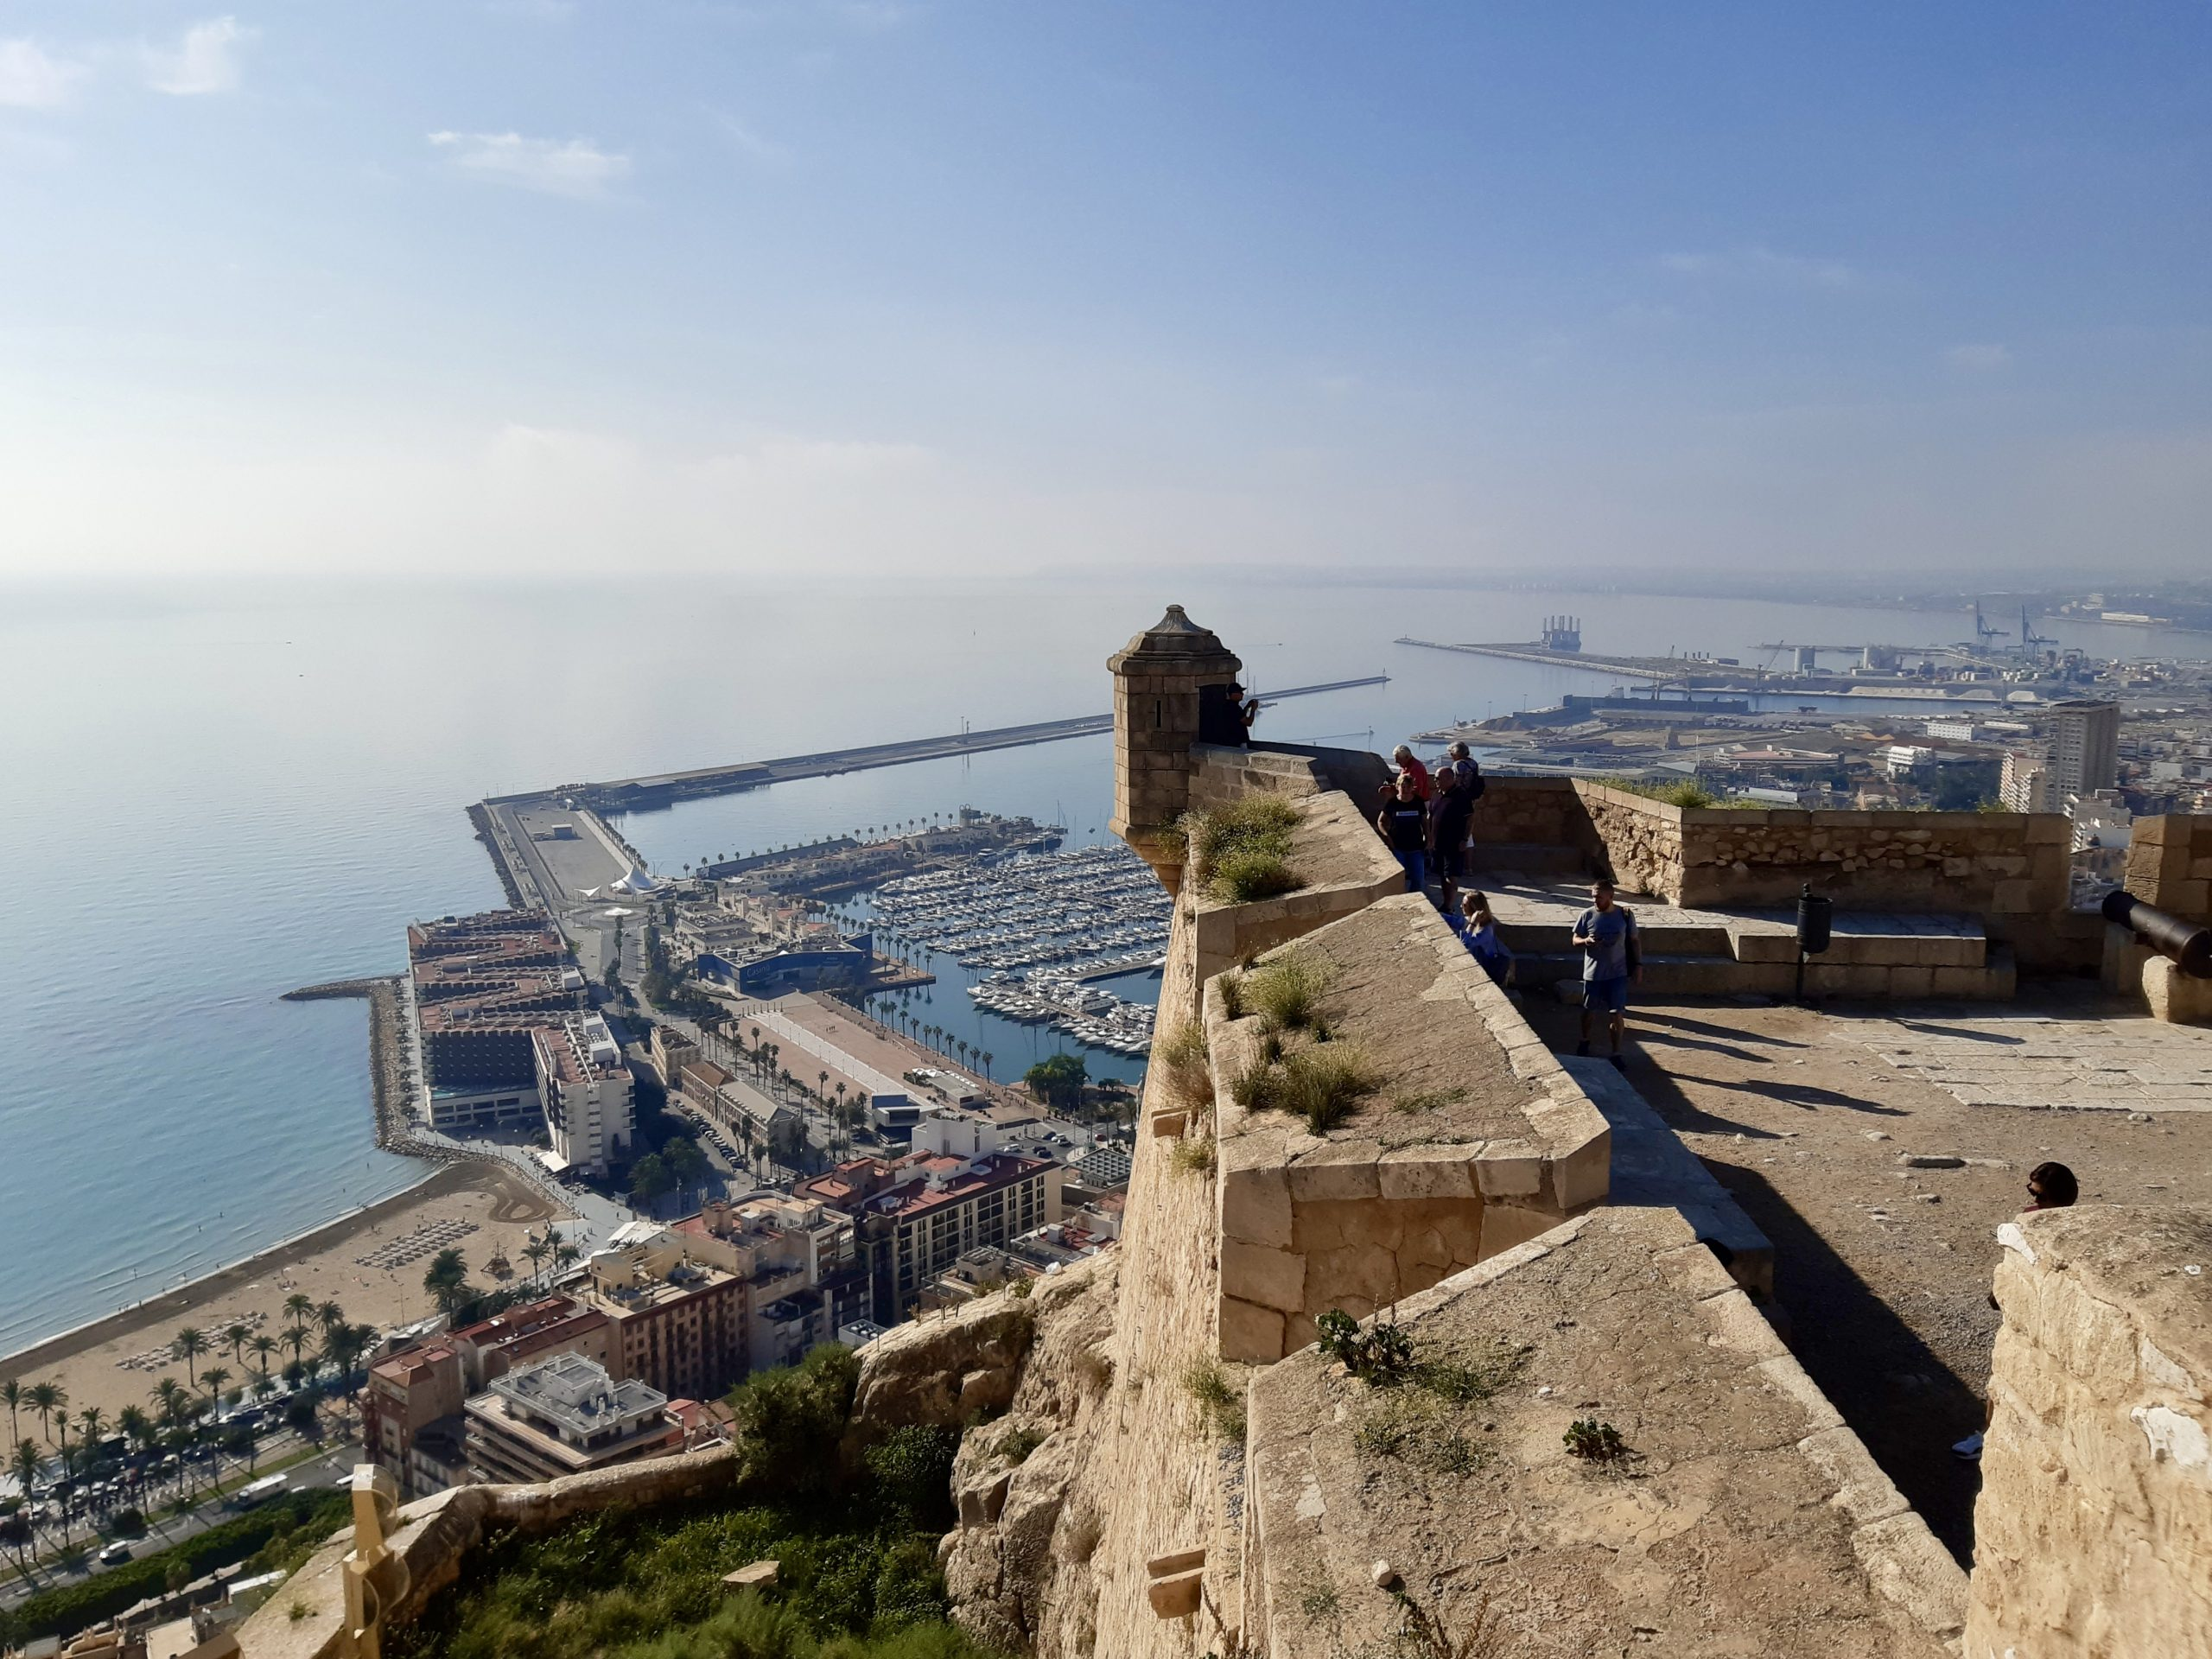 Alicante-ES-30_10_19-©-Roman-Goly-1-scaled.jpeg